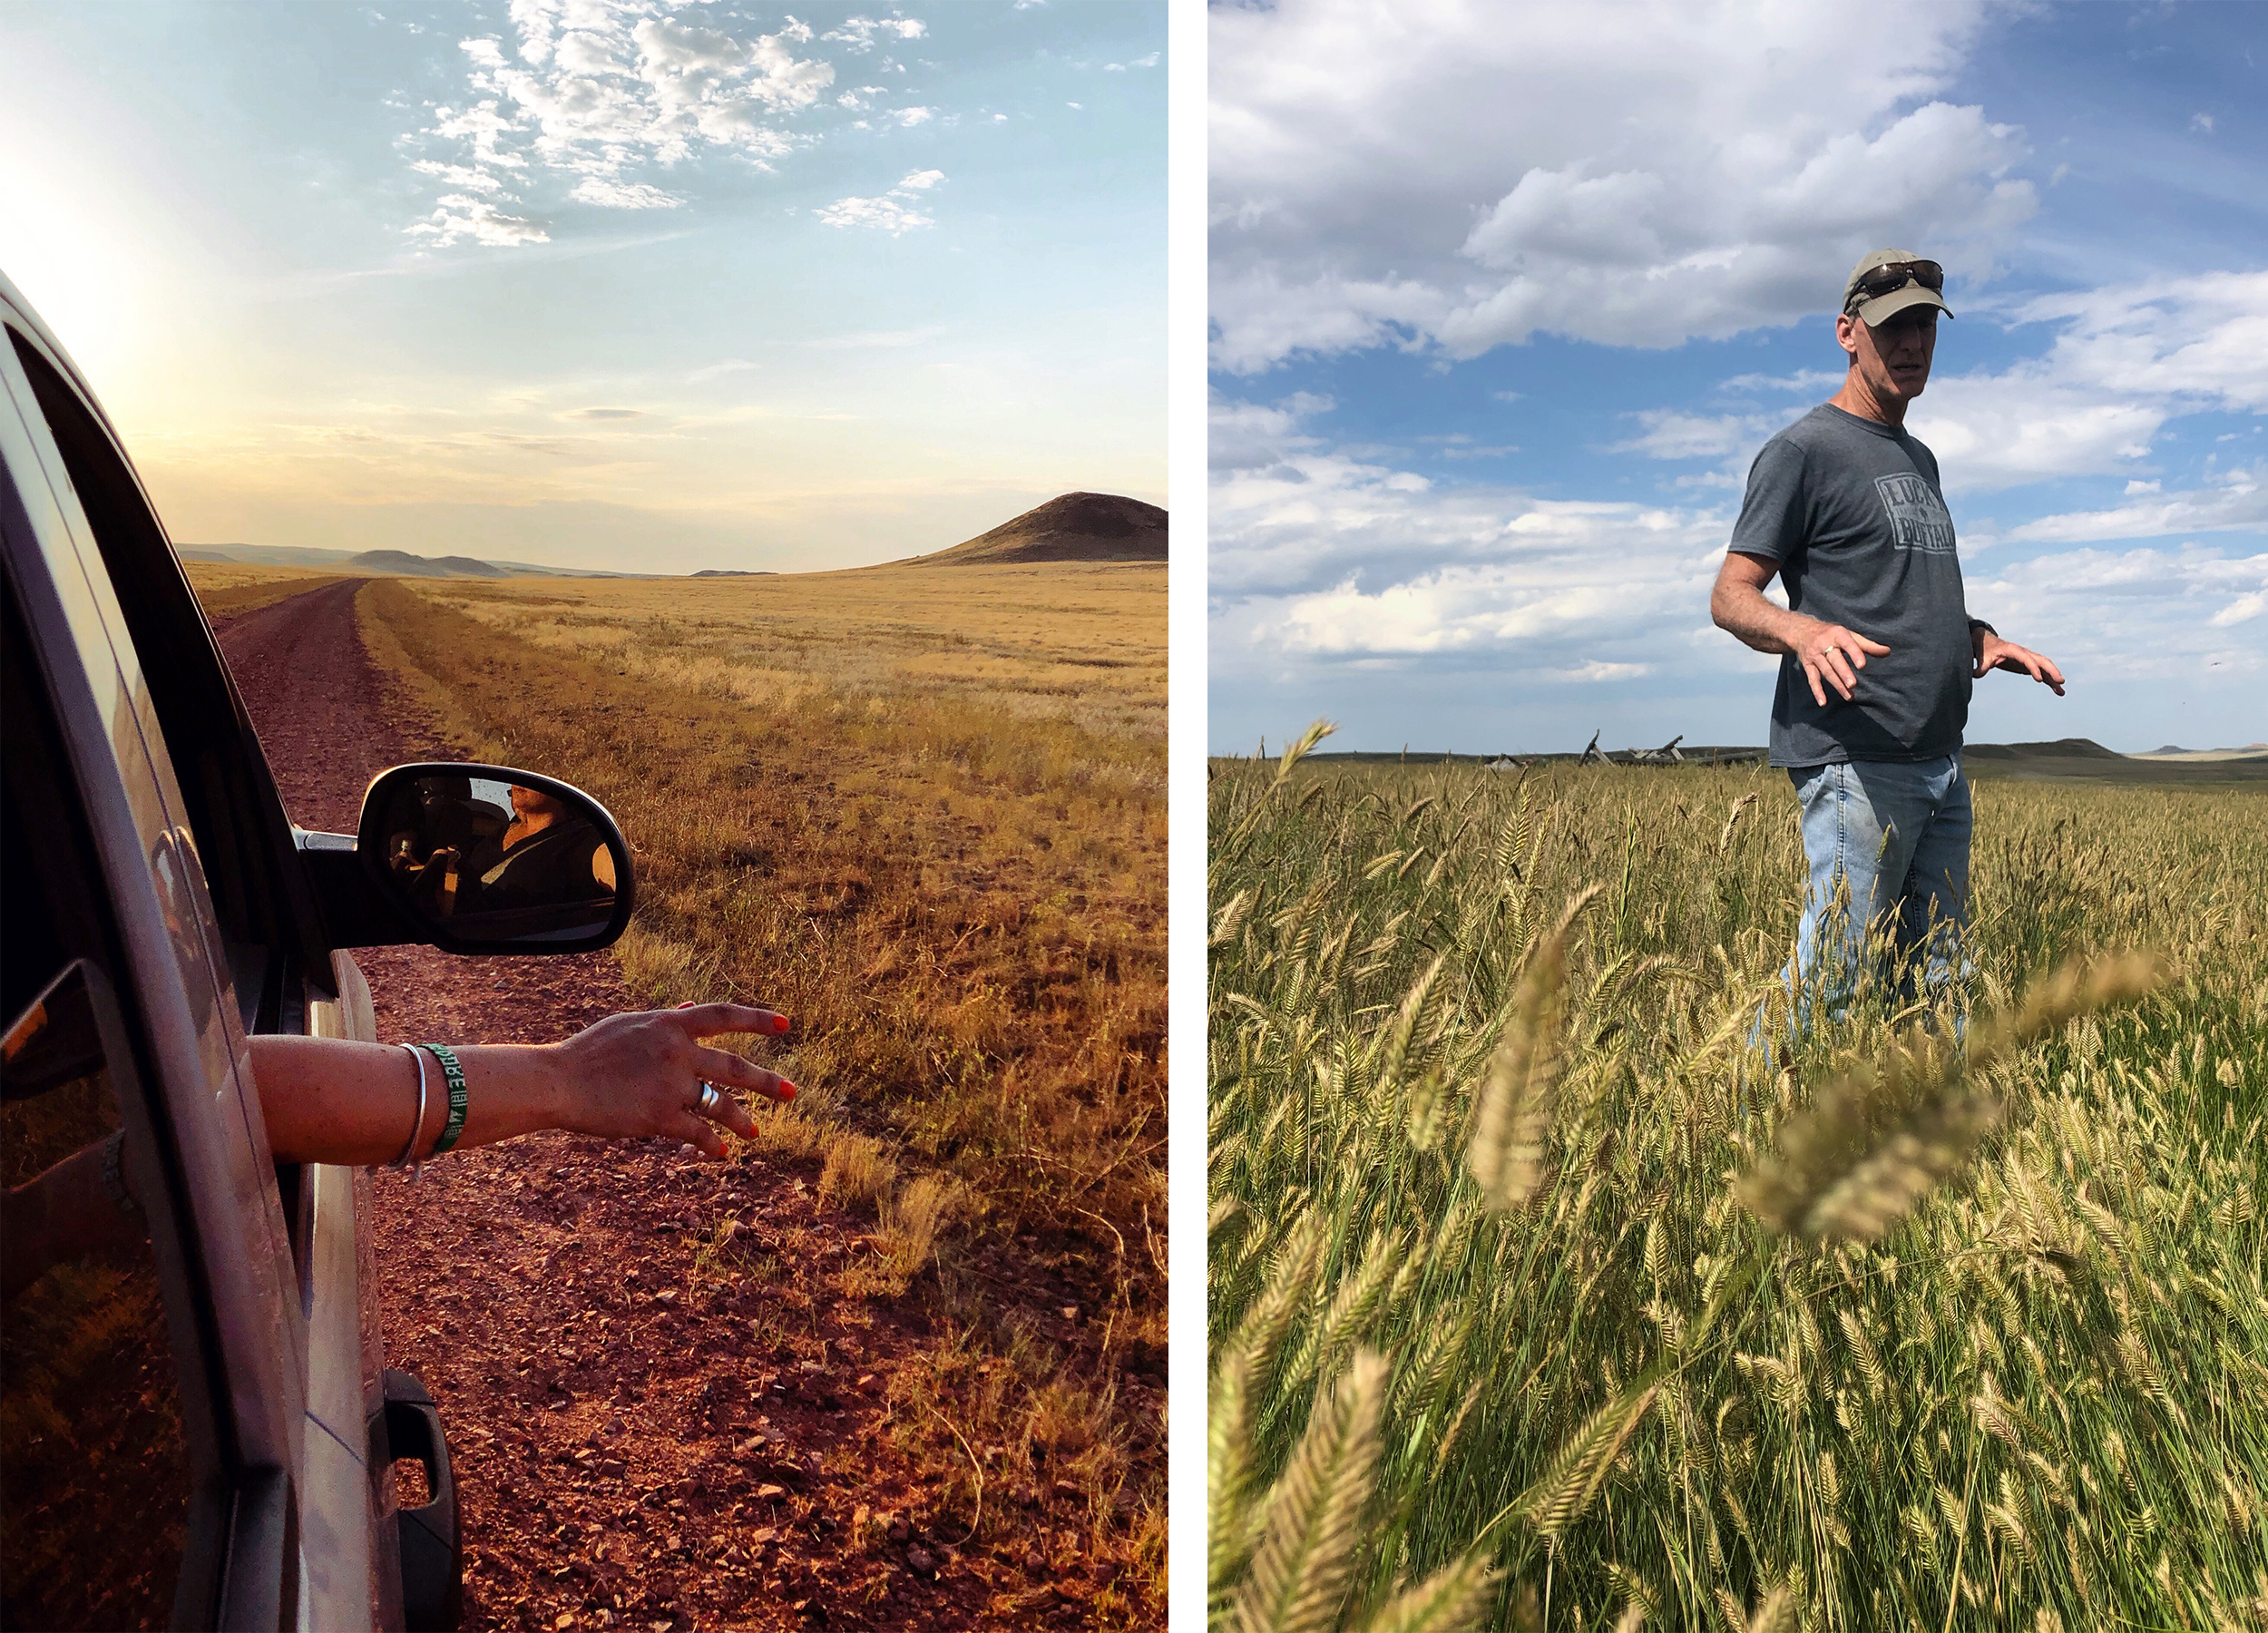 Left: Driving in Open Plains with Hand out the Window. Right: Man Standing in field